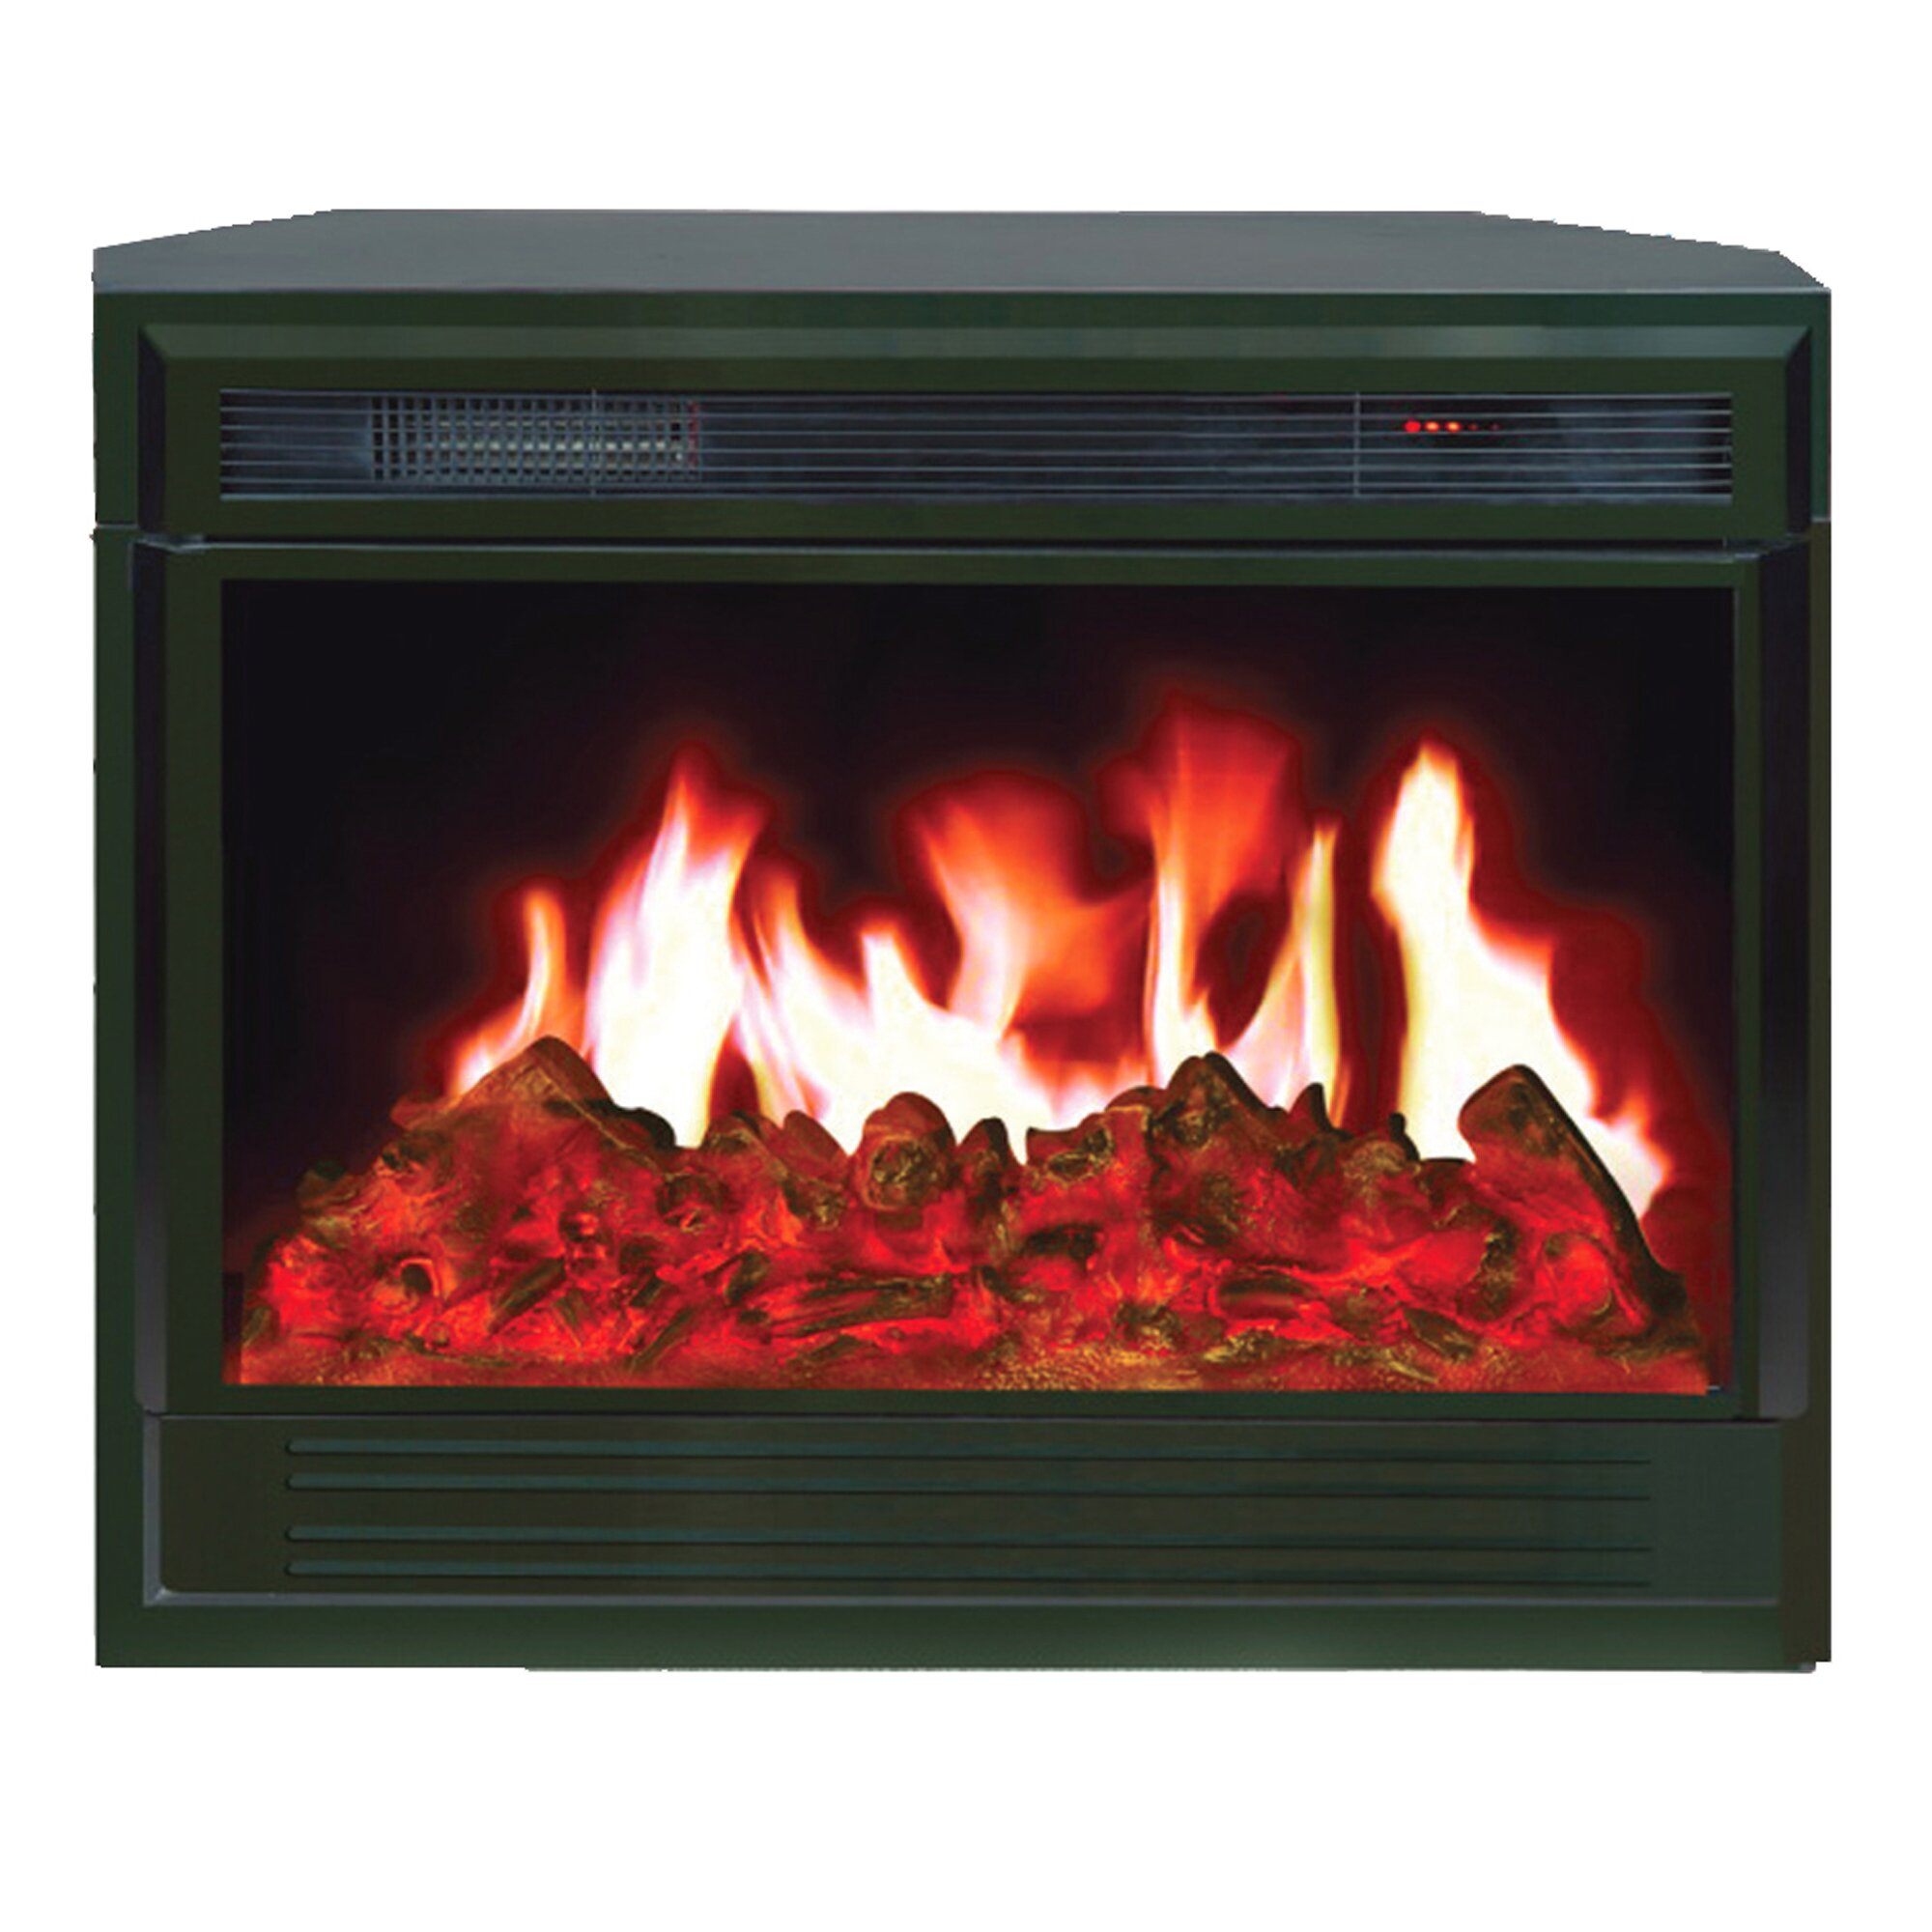 yosemite home decor electric fireplace yosemite home decor hardy electric fireplace wayfair 13115